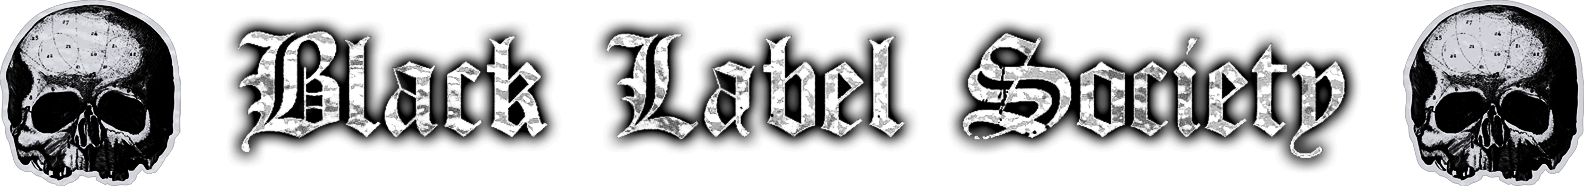 Black Label Society logo